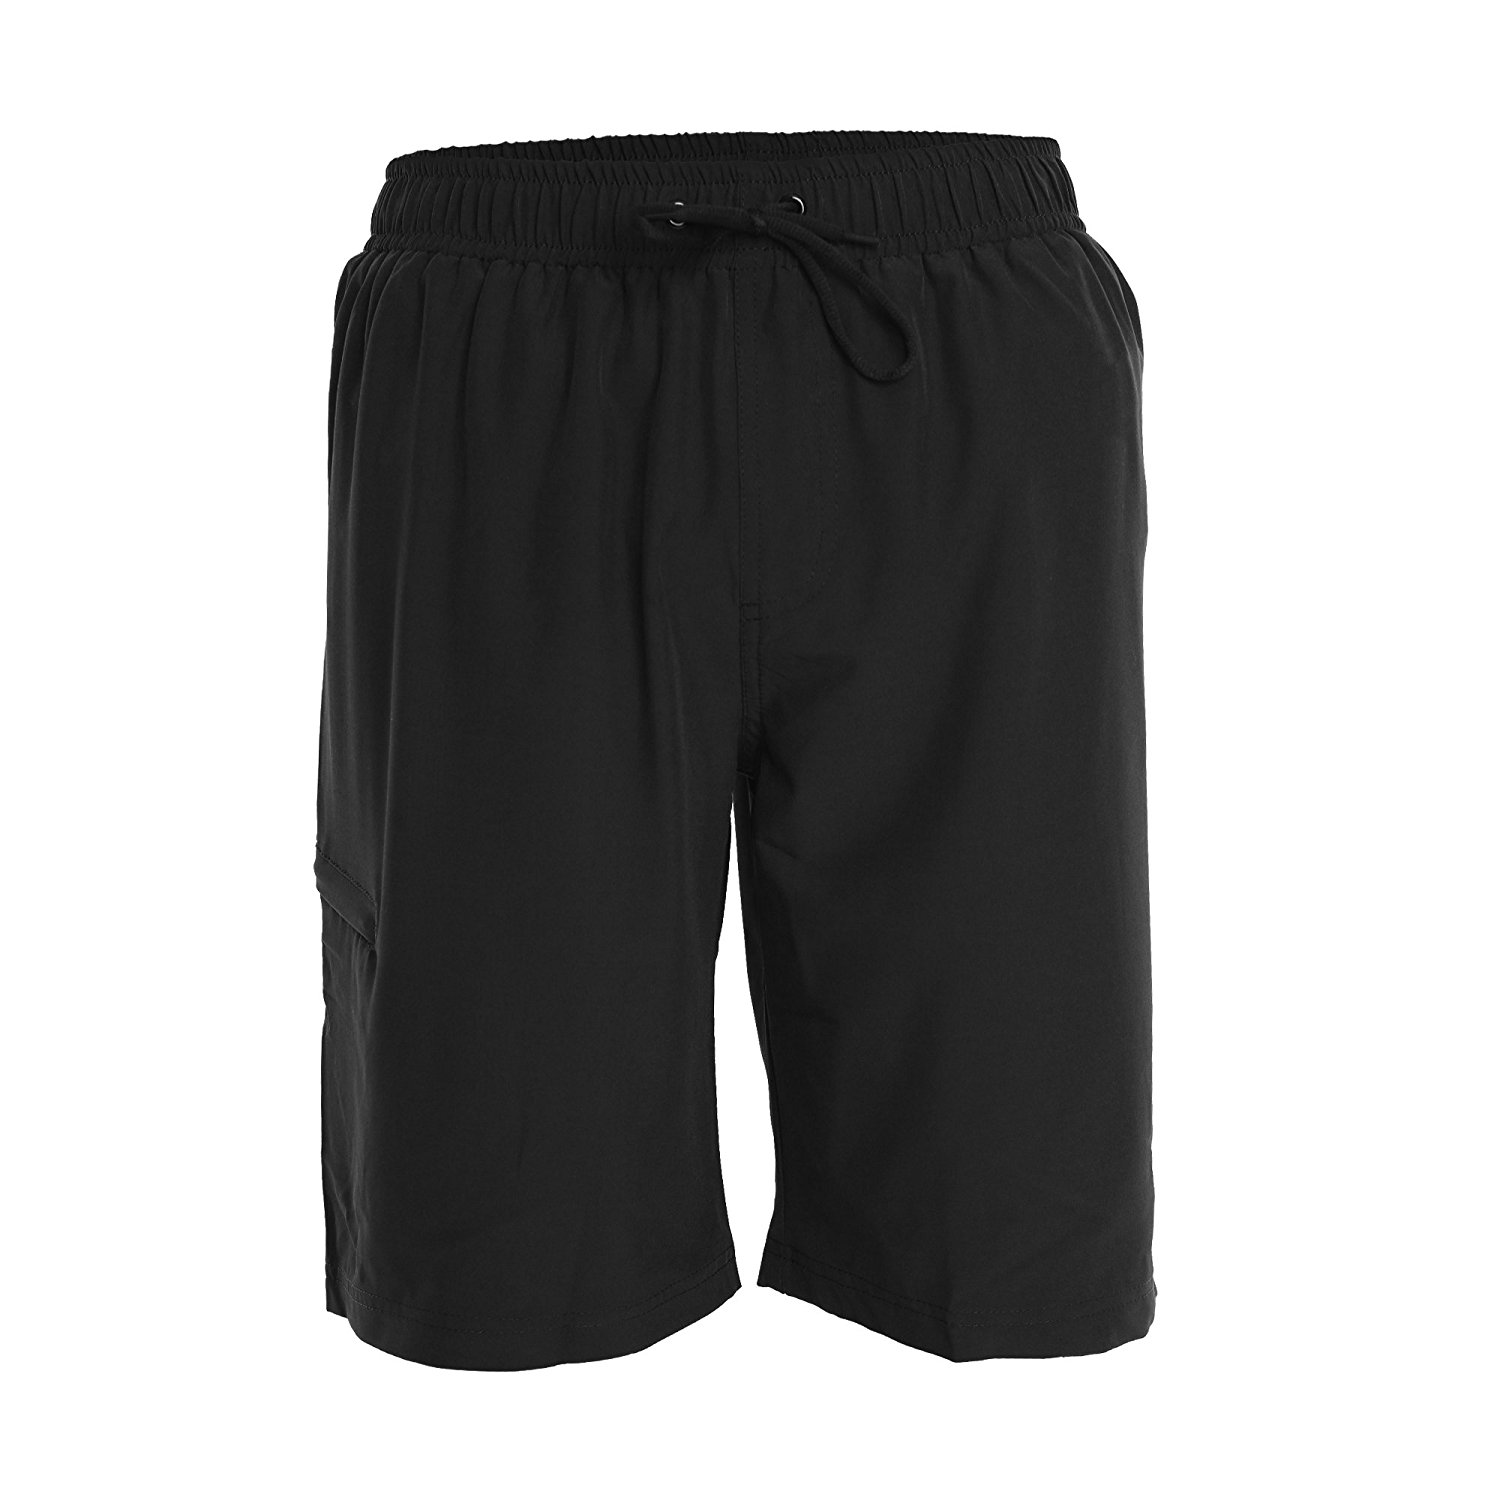 8611127713 Get Quotations · Men's Boardshorts - Perfect Swimsuit, Swim Trunks, Board  Shorts, Workout or Athletic Shorts